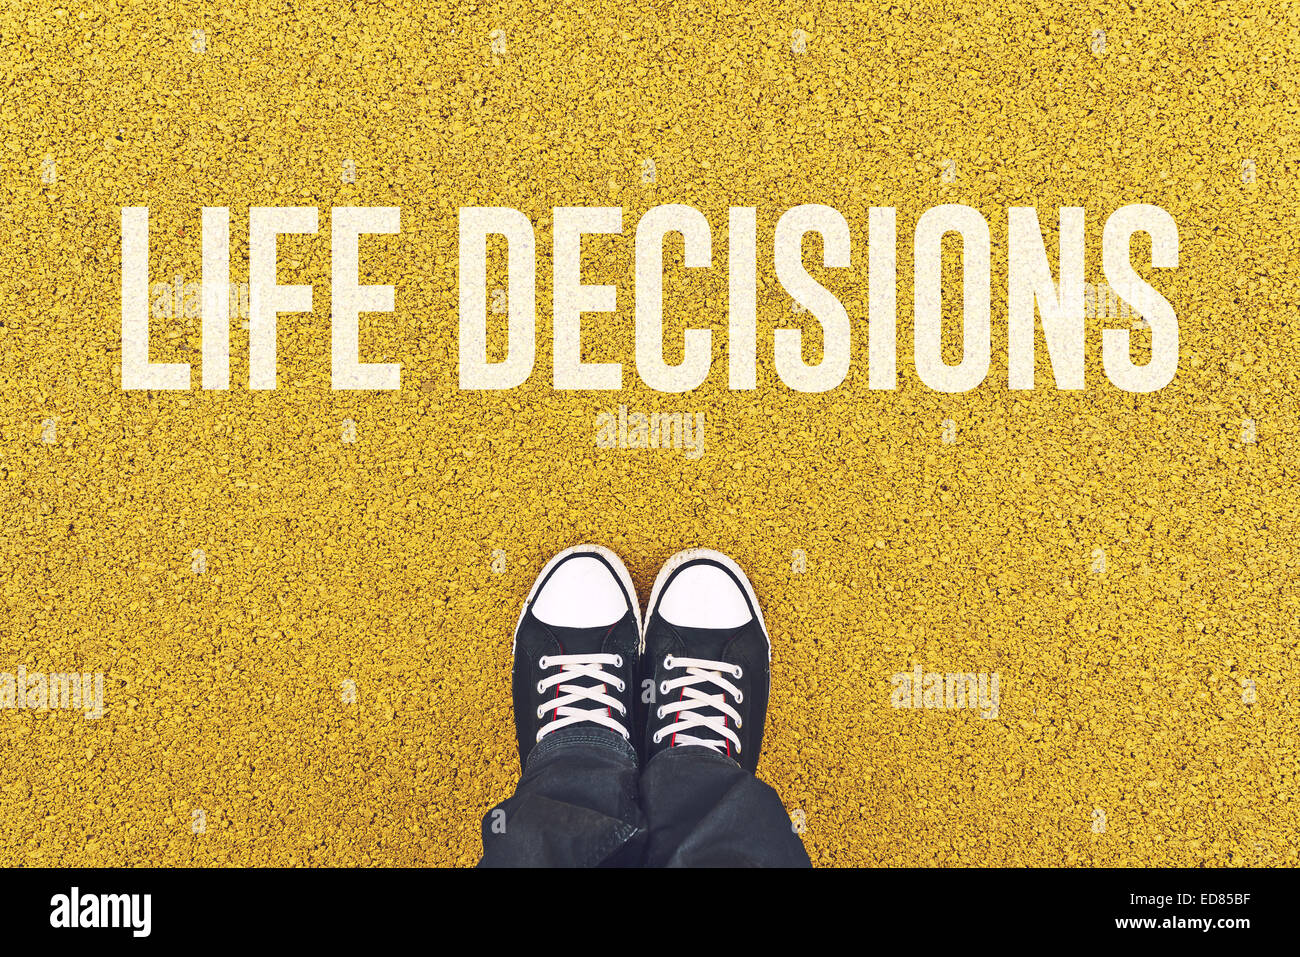 Young man standing on pavement in front of Life Decisions sign printed. - Stock Image